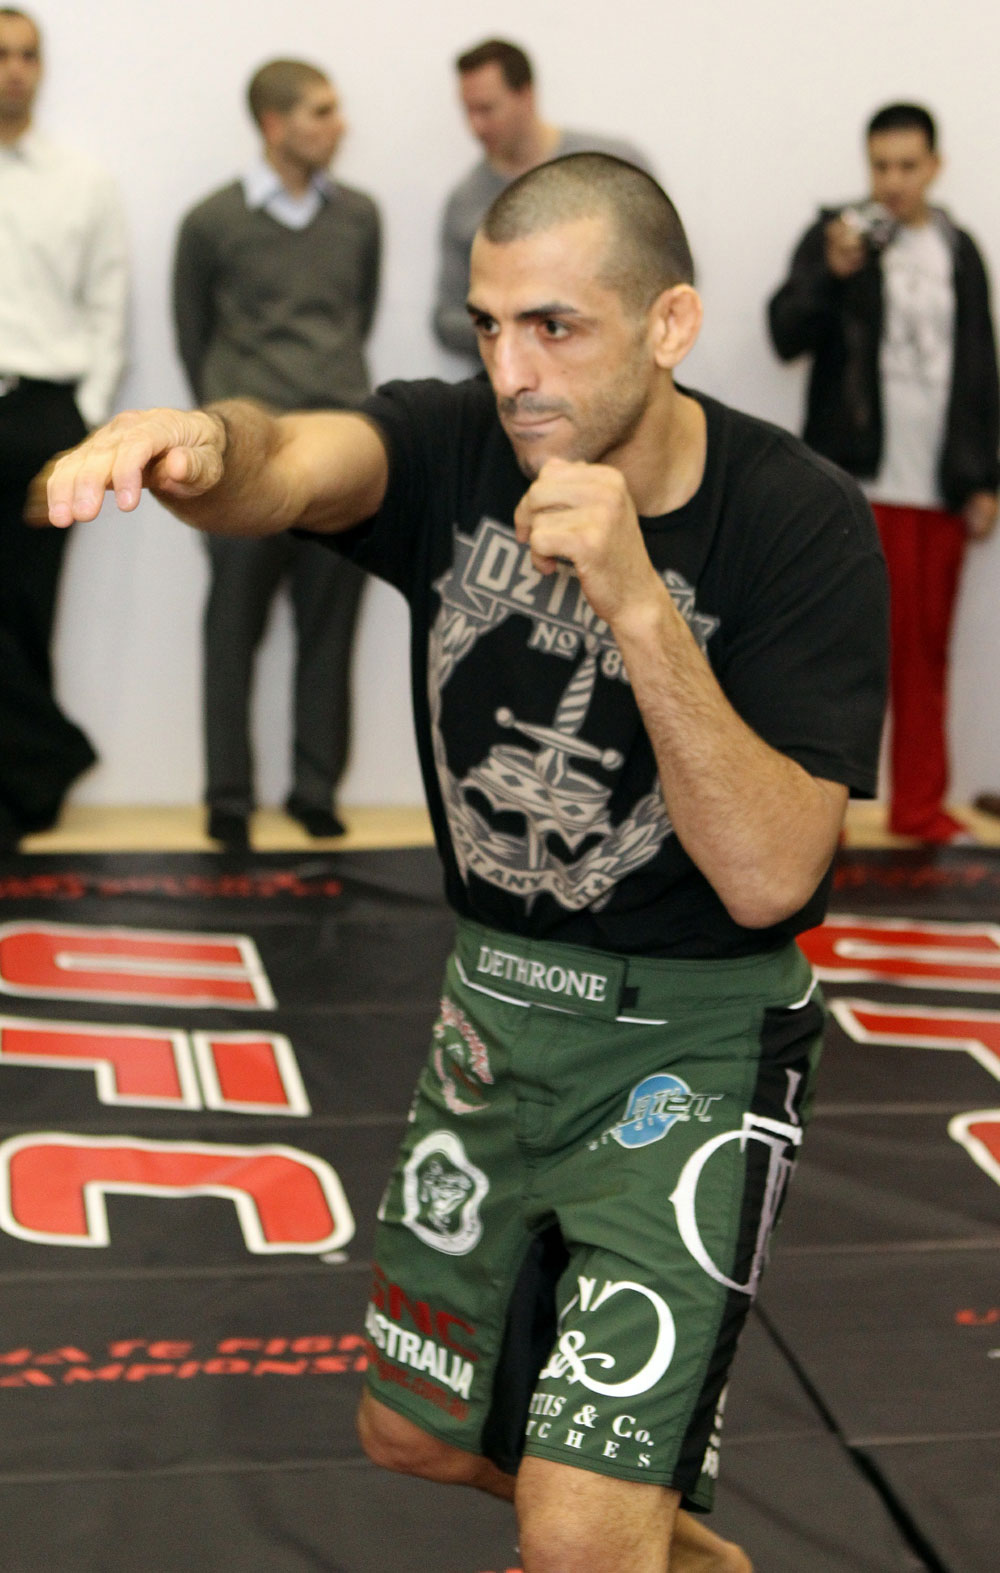 George Sotiropoulos works out for the media at the UFC 123 open workouts at the Detroit Athletic Club in Detroit, Michigan on November 18, 2010  (Photo by Josh Hedges/Zuffa LLC/Zuffa LLC via Getty Images)